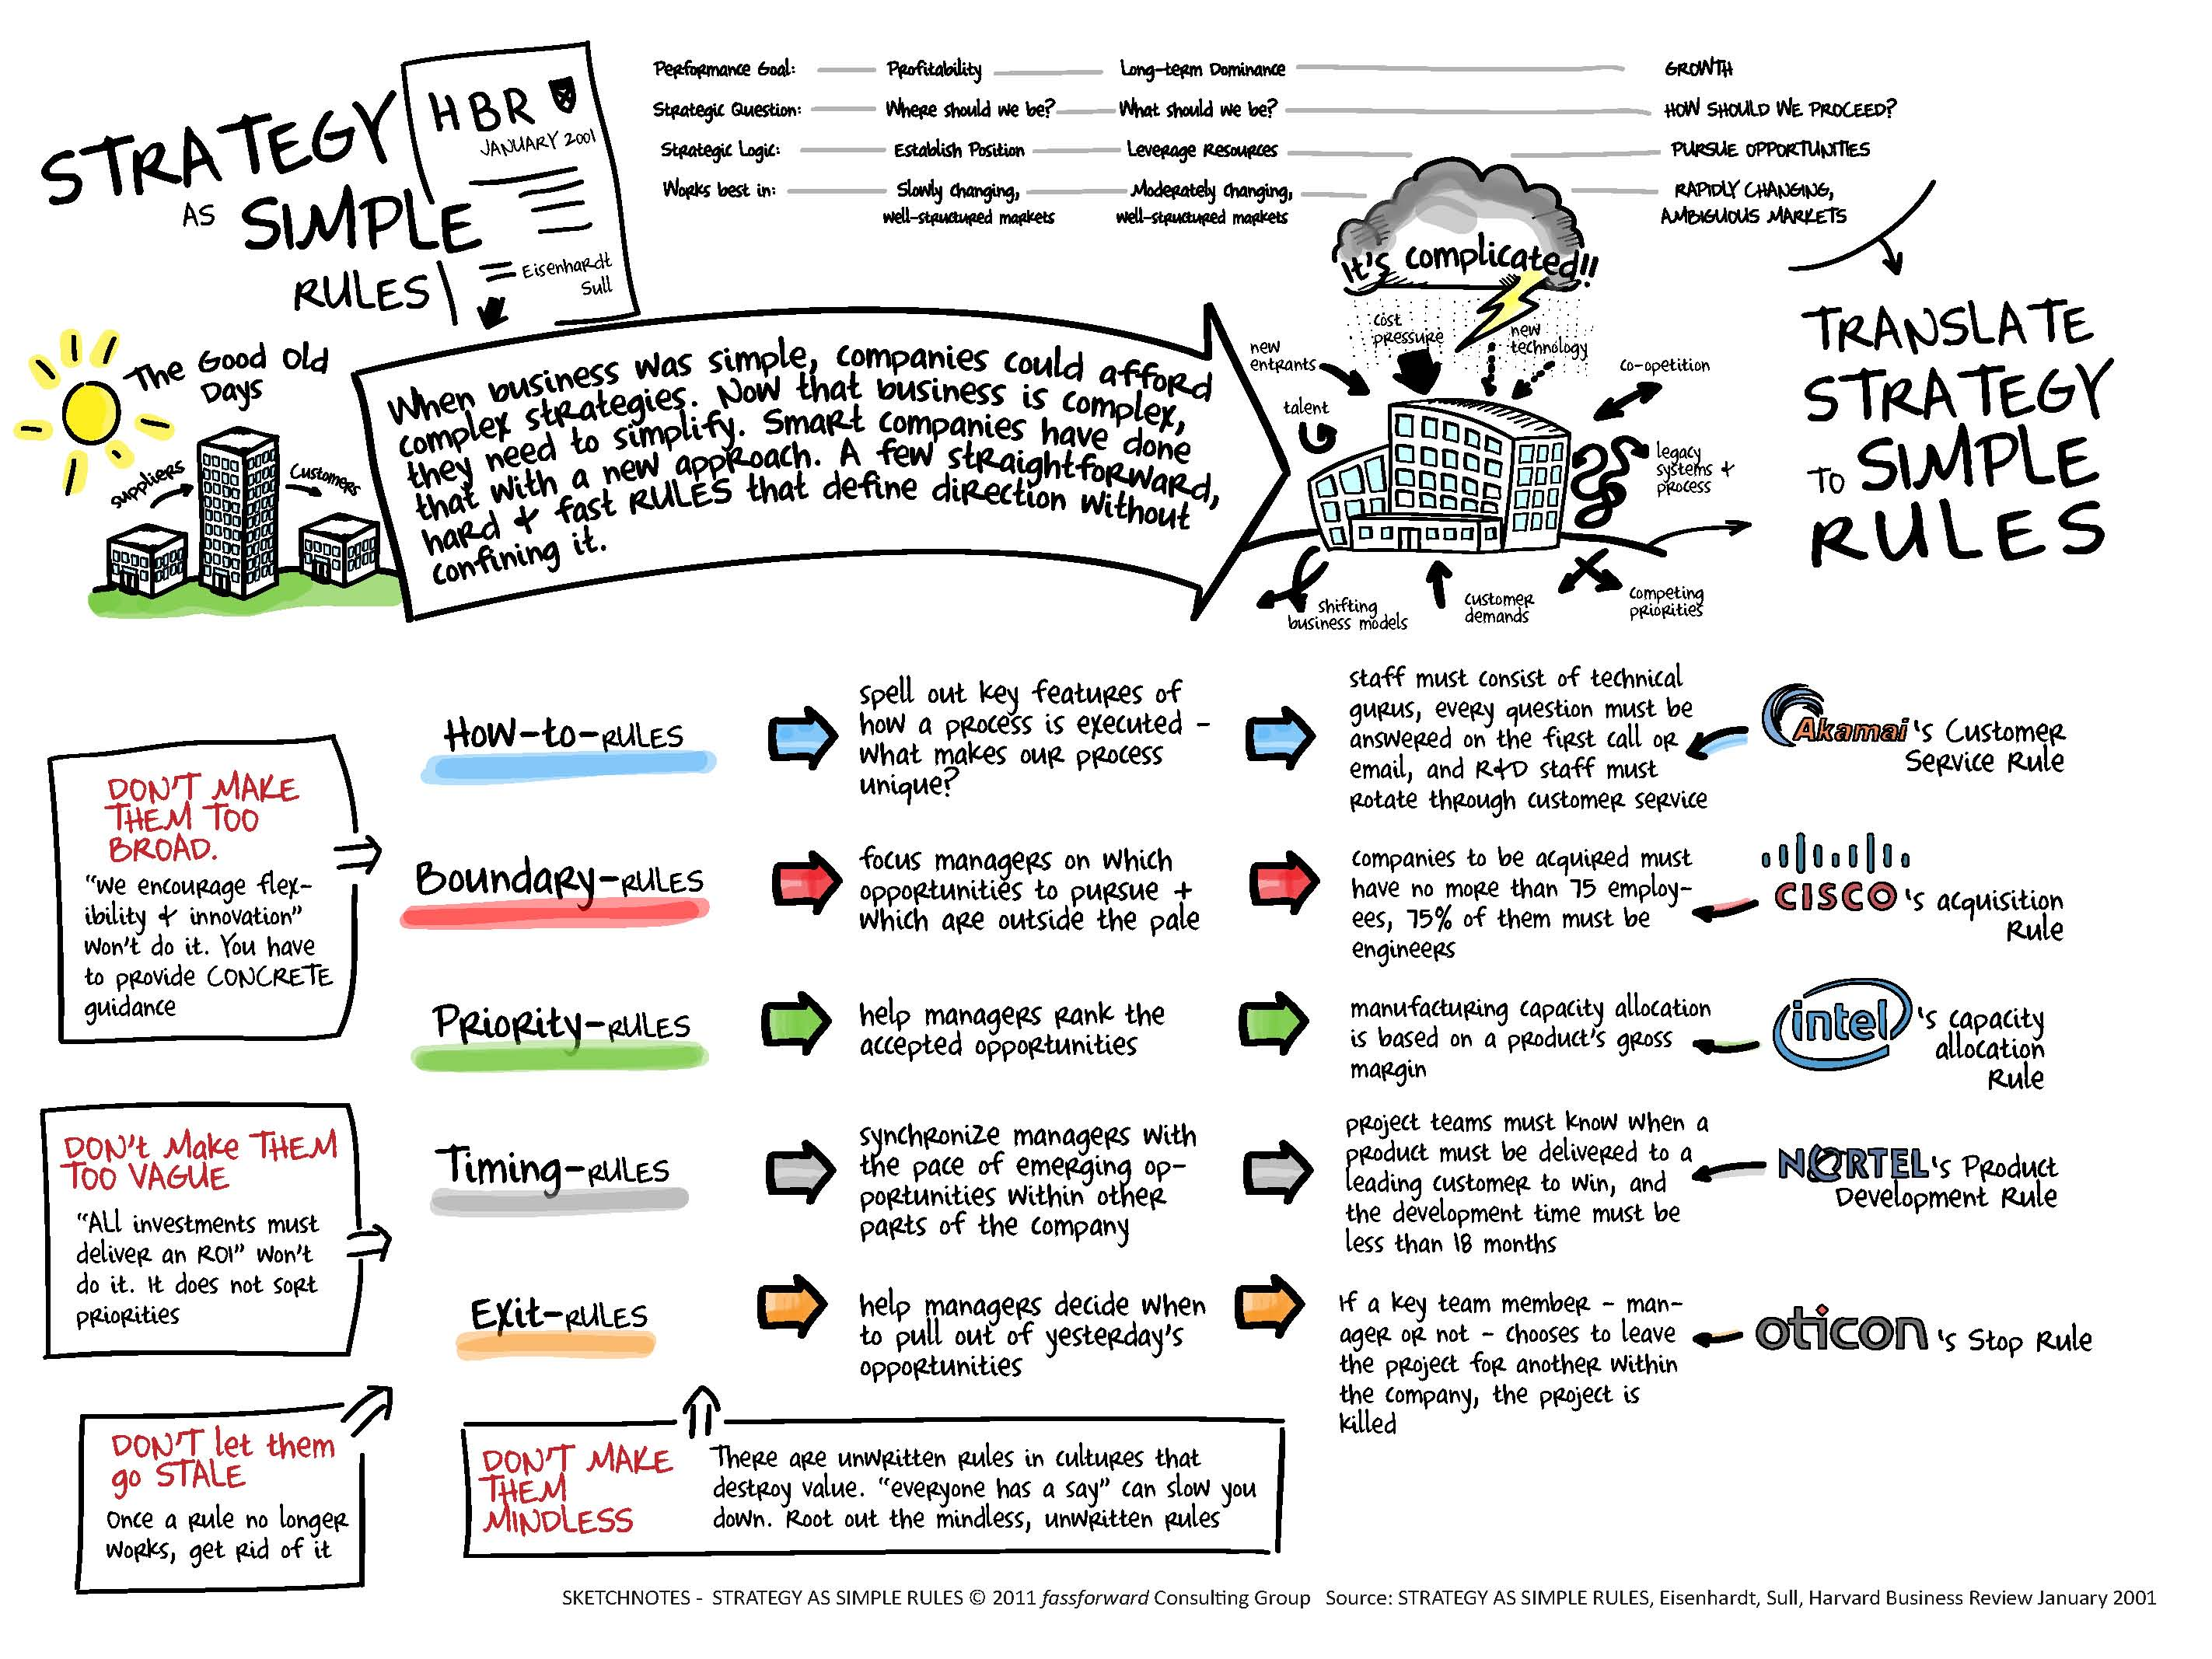 basic strategies used to respond to uncertainty defender Limits our ability to adopt a comprehensive approach in a number of ways, includ-   responses our bodies have evolved to respond to threats, which we must   defenders, inner beliefs and ethical values are a fundamental lens through which   recognising such uncertainty where it exists is a positive first step which can.